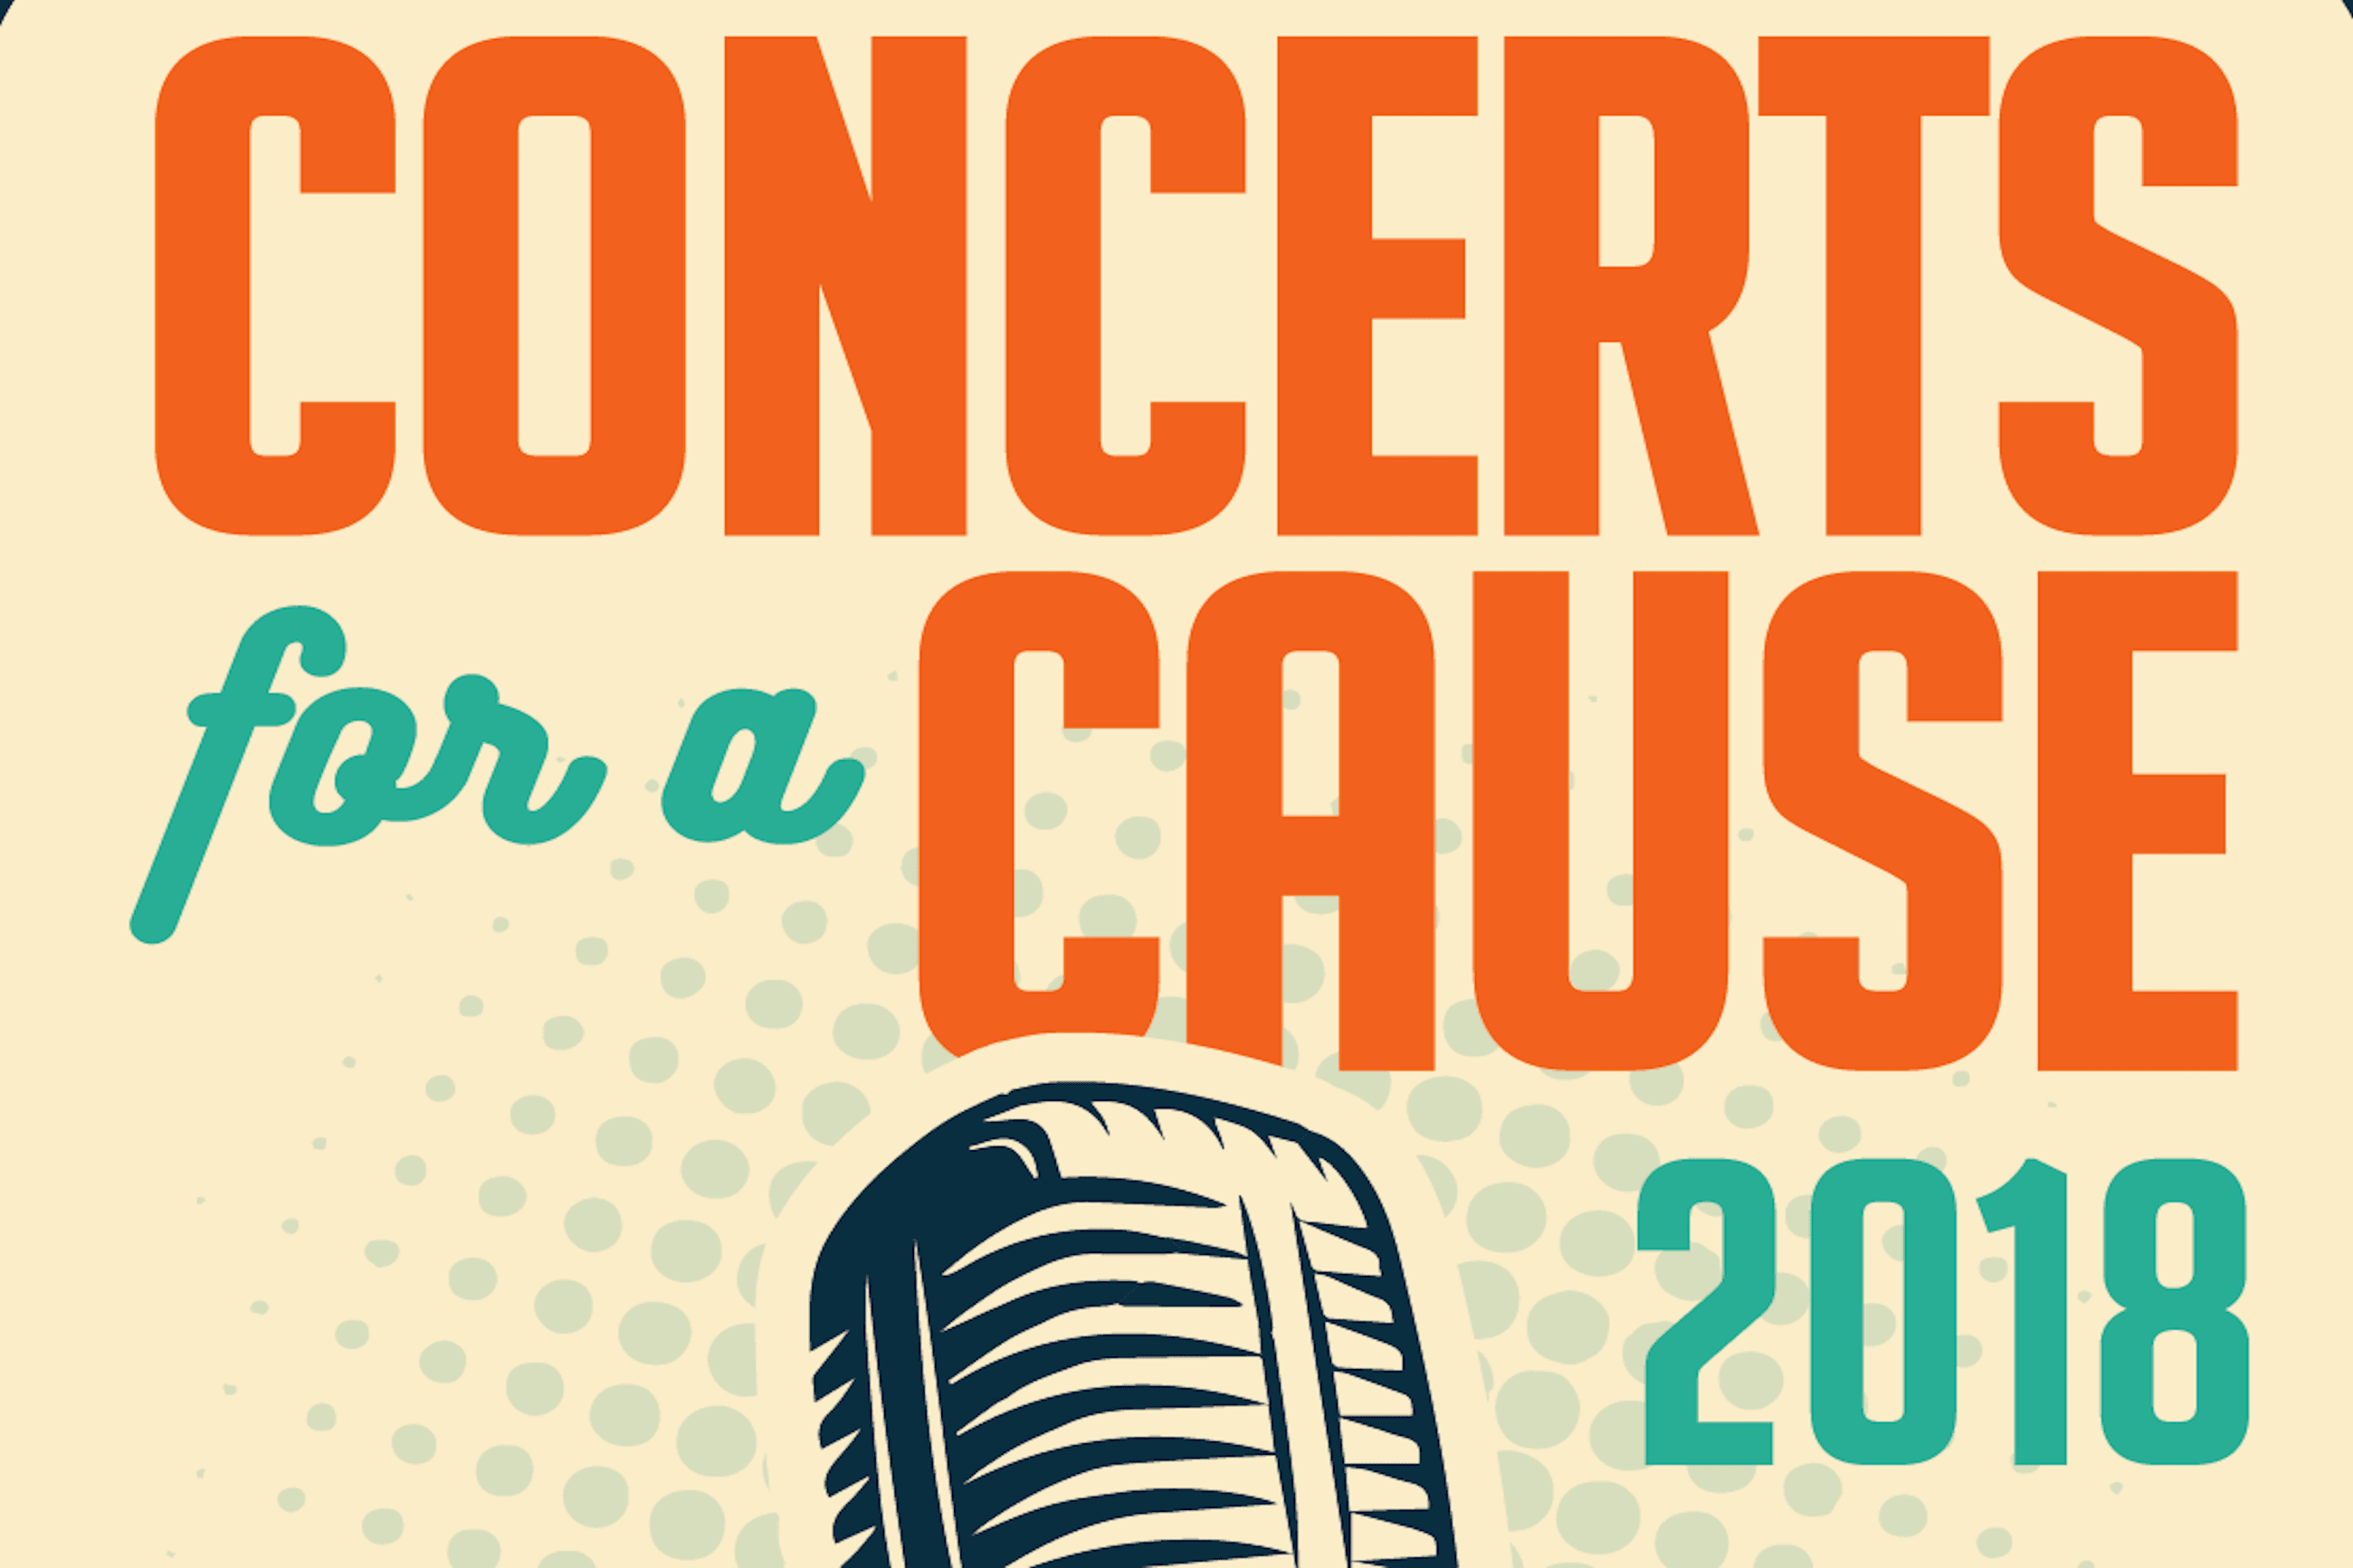 Poster promoting Concerts for a Cause music series